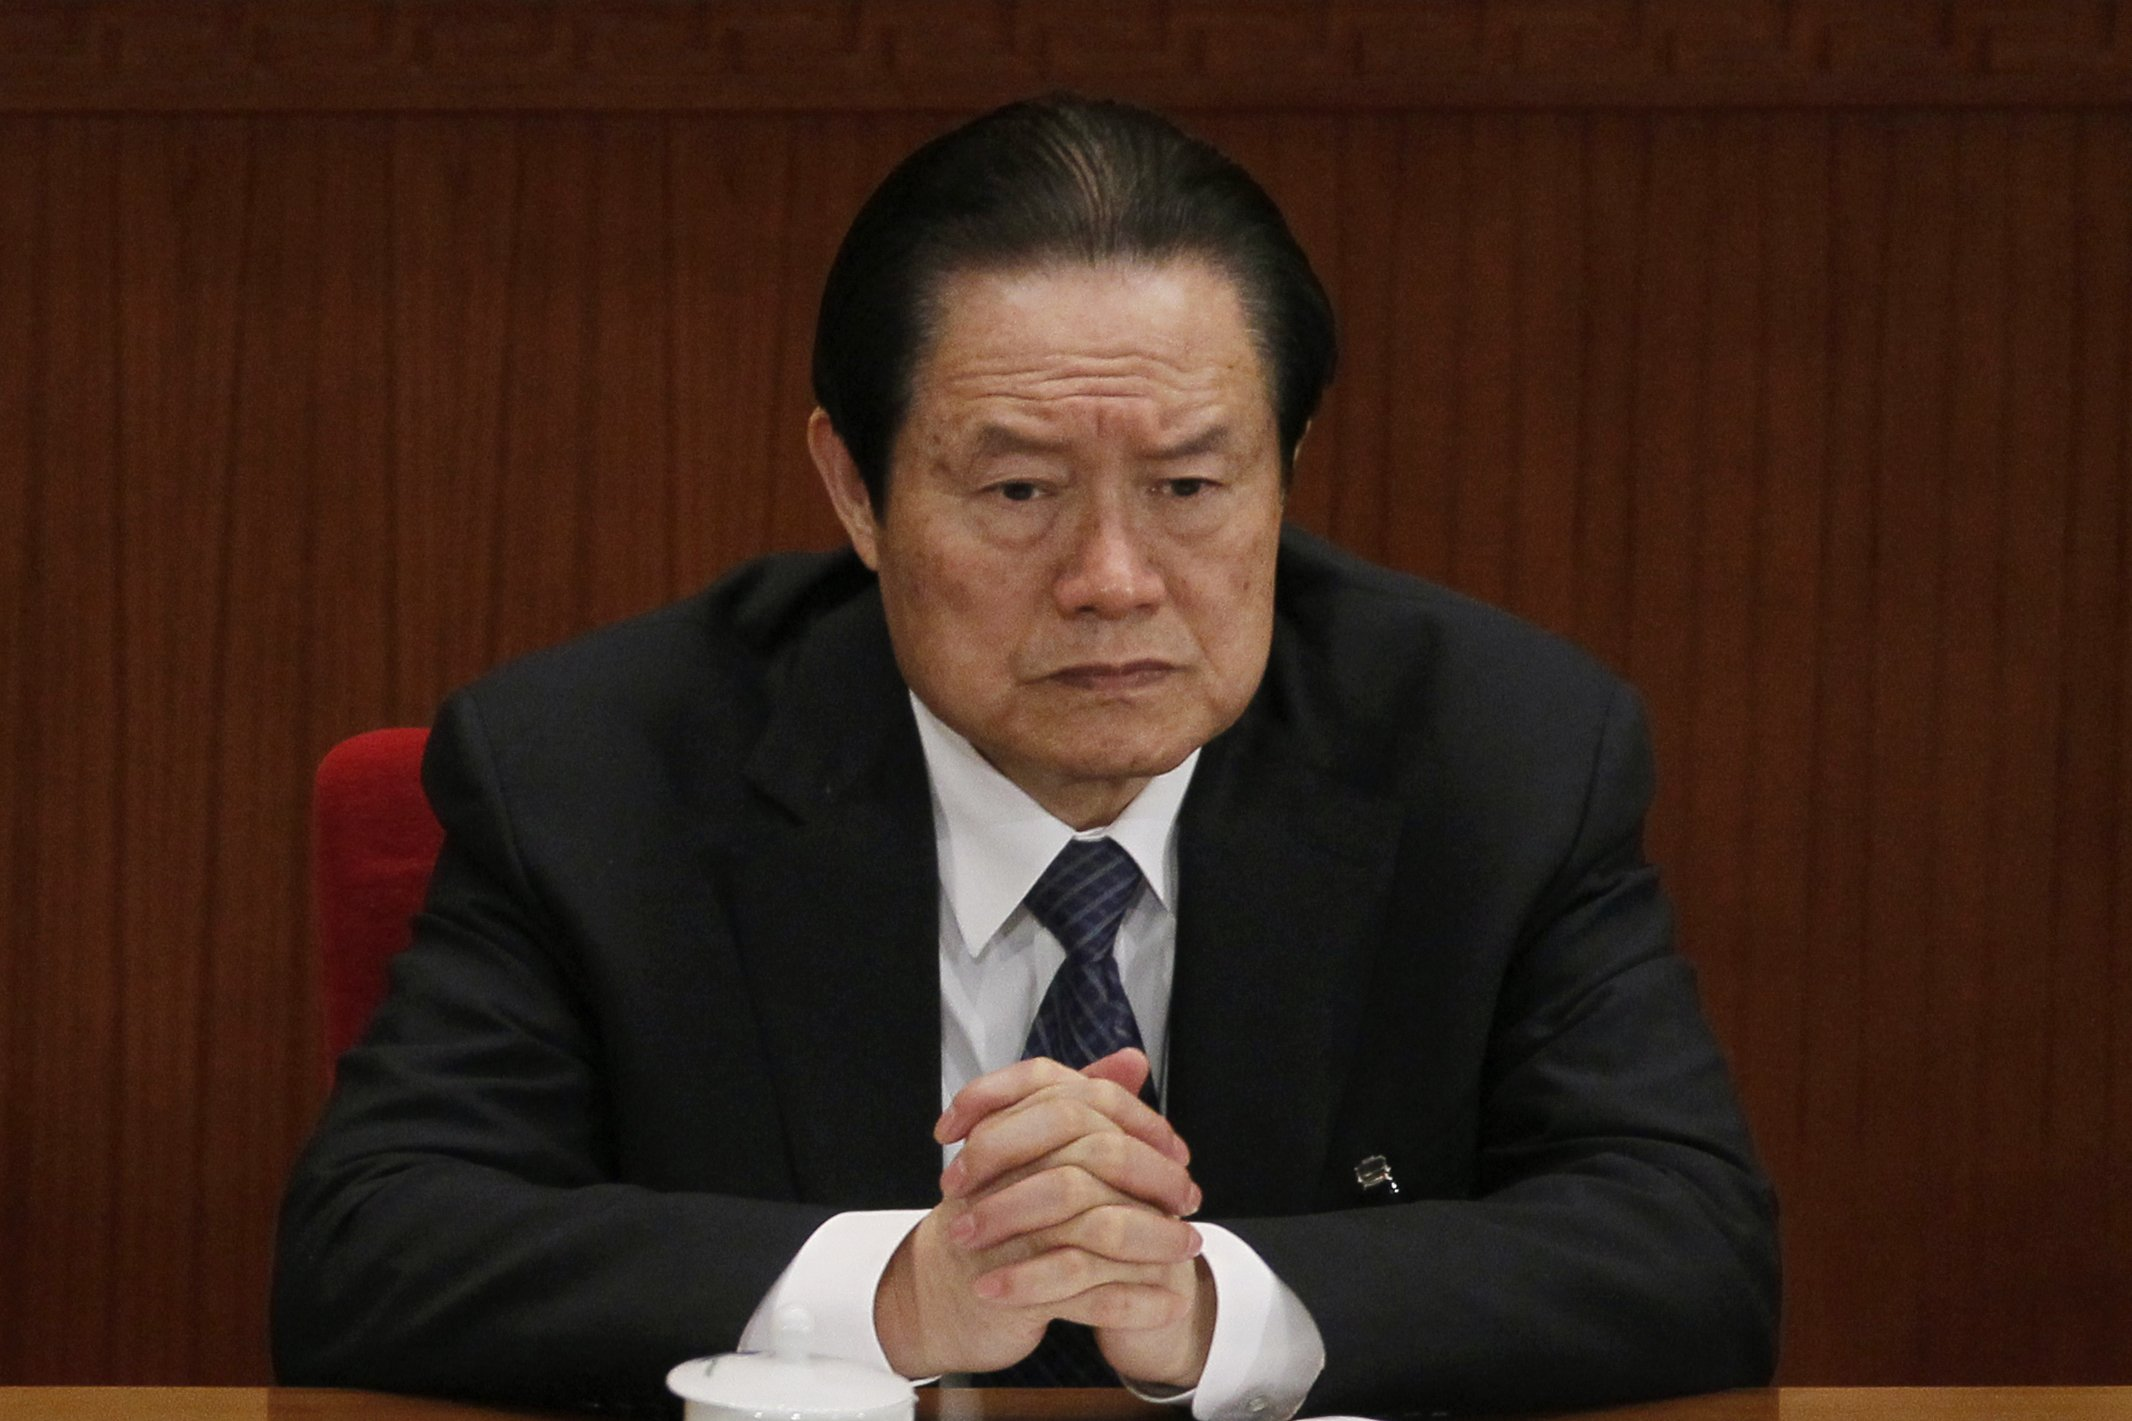 Zhou Yongkang, then Chinese Communist Party Politburo Standing Committee member in charge of security, attends a plenary session of the National People's Congress at the Great Hall of the People in Beijing on March 9, 2012